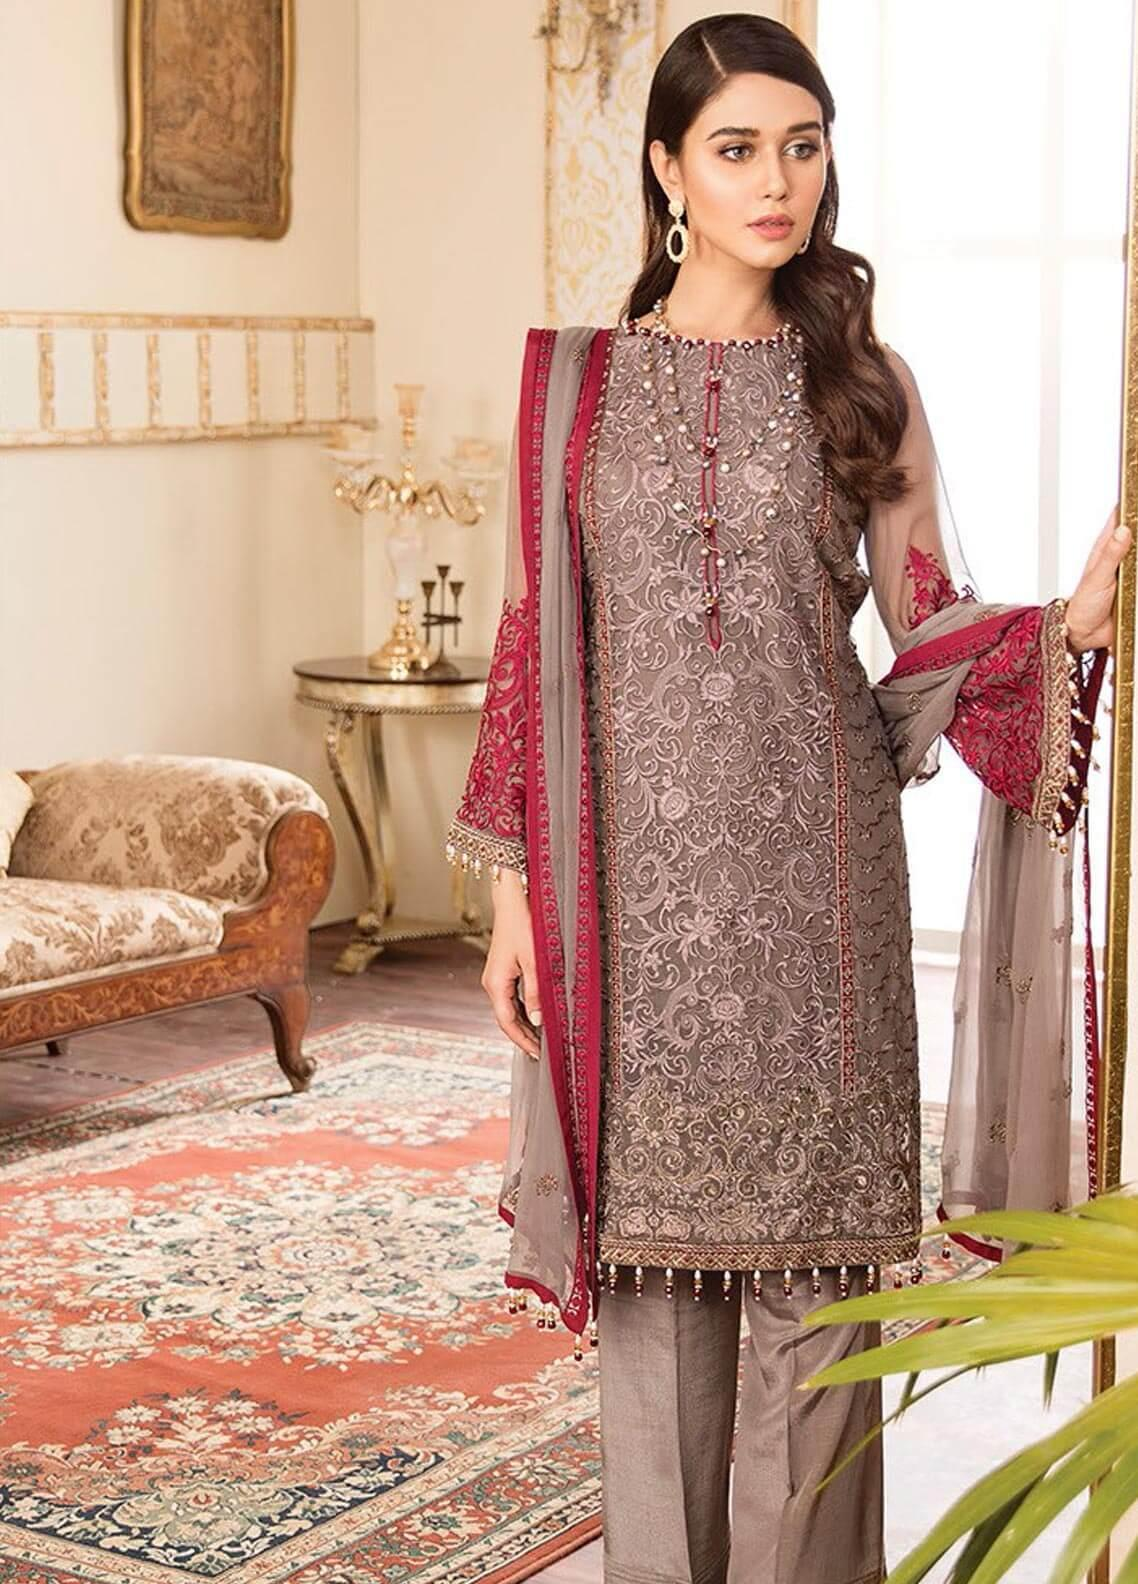 f28c311fdd Kuch Khas By Flossie Embroidered Chiffon Unstitched 3 Piece Suit FKK19-C4  10 DREAM DIVA - Luxury Collection